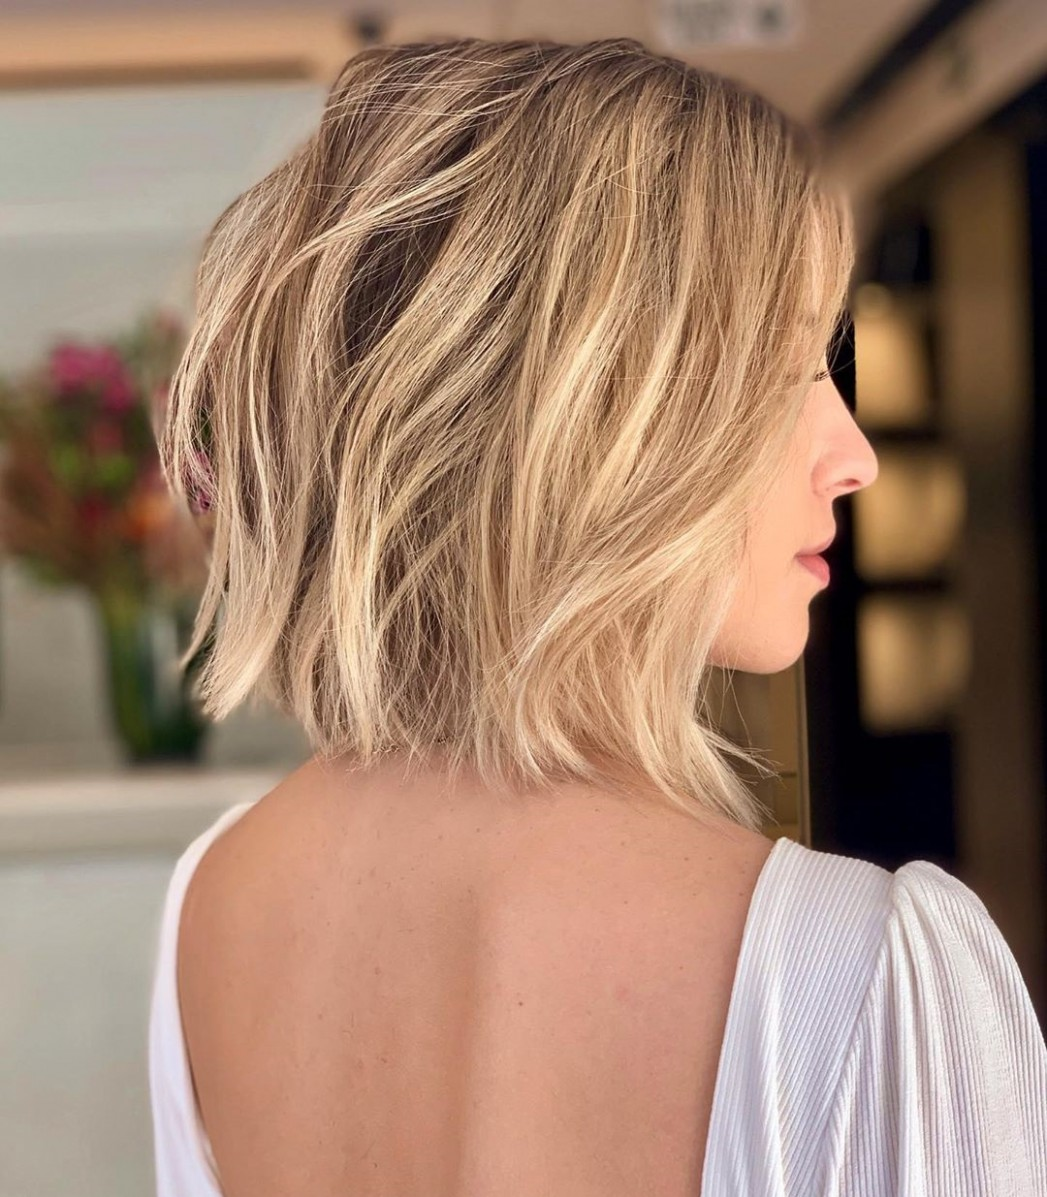 10 Blunt Cuts and Blunt Bobs That Are Dominating in 10 - Hair